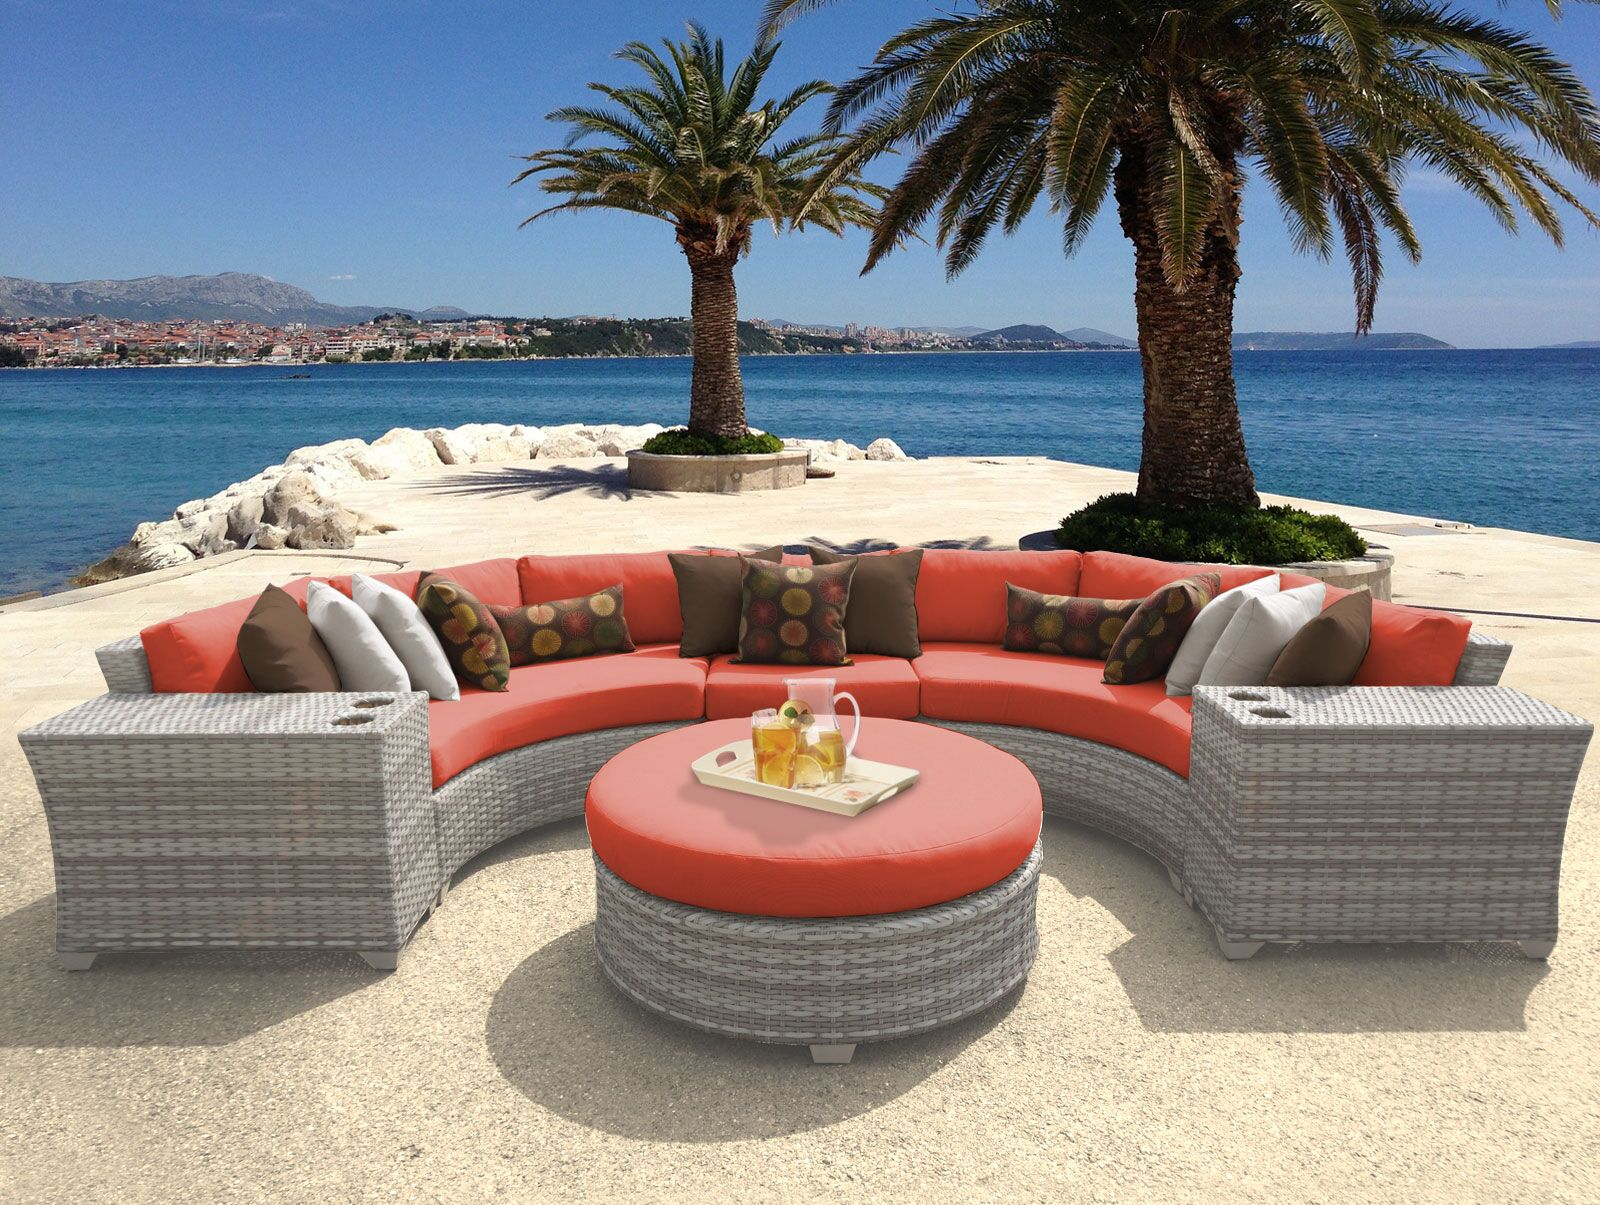 Ansonia 6 Piece Sectional Set with Cushions Color: Tangerine